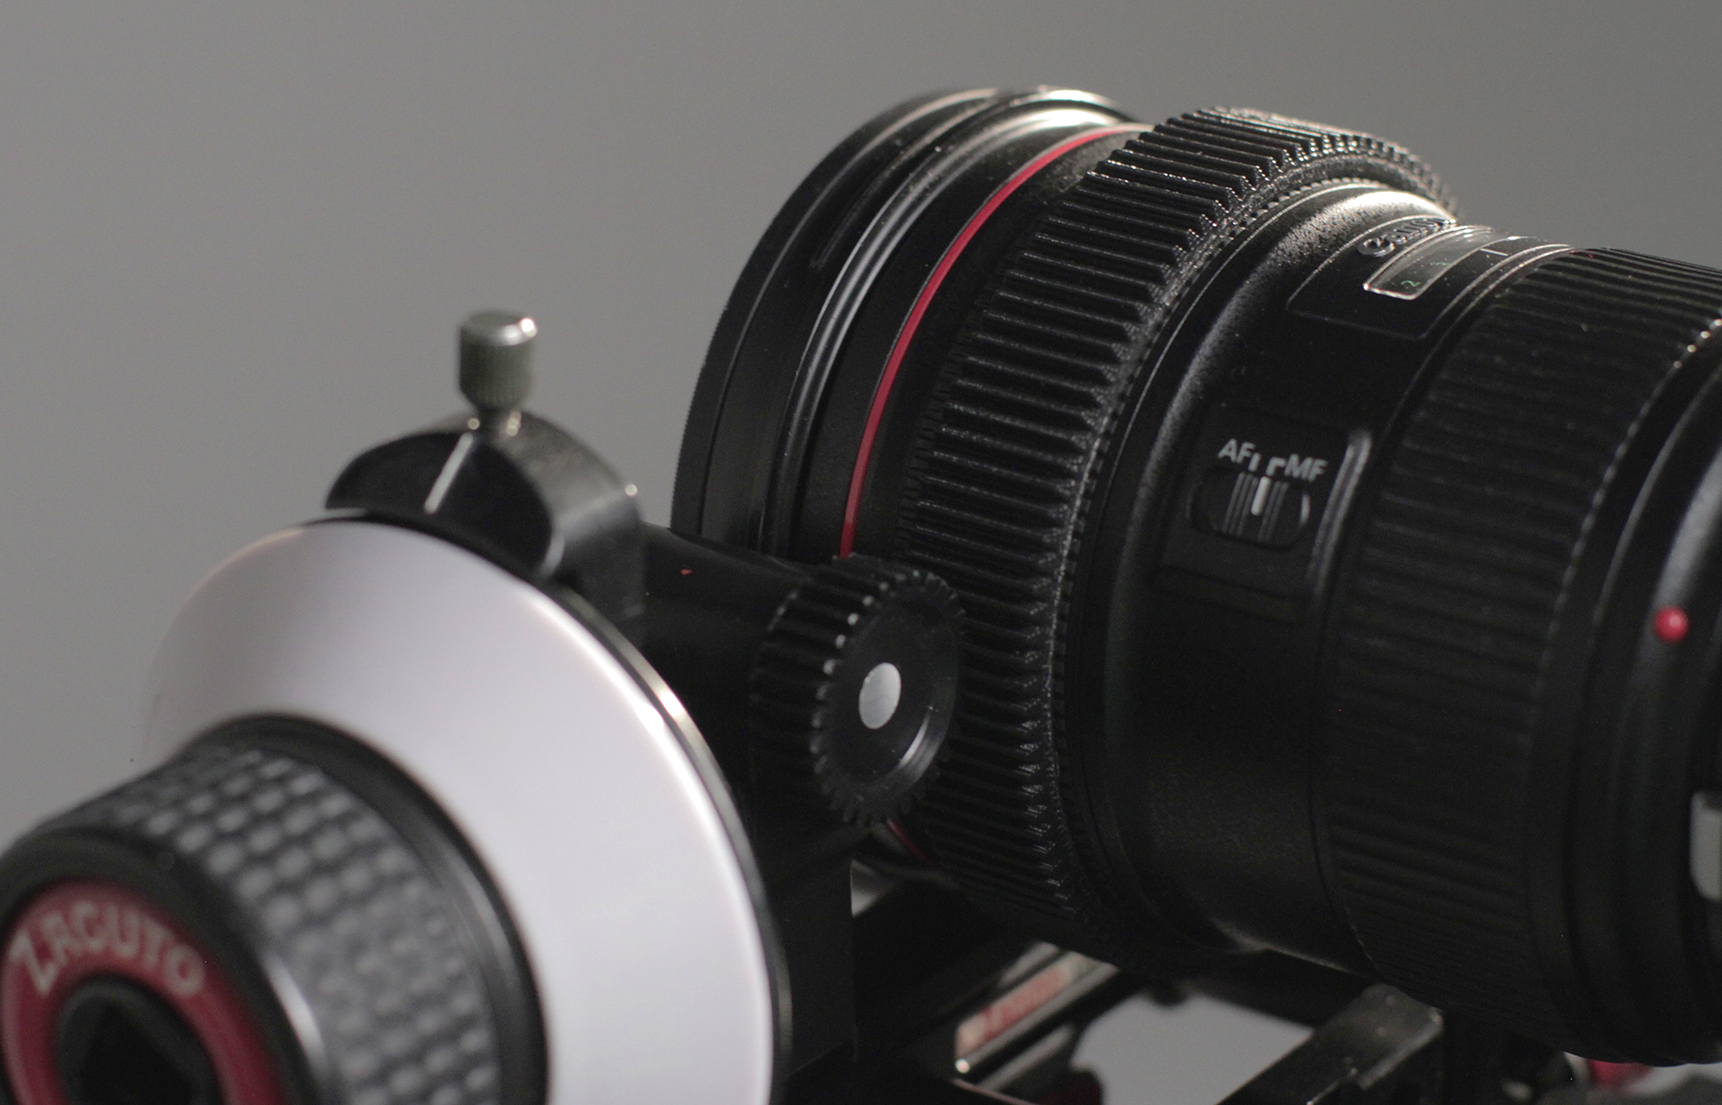 I use my Canon 24-70mm more than any other lens I own. A seamless gear is a must in my opinion.